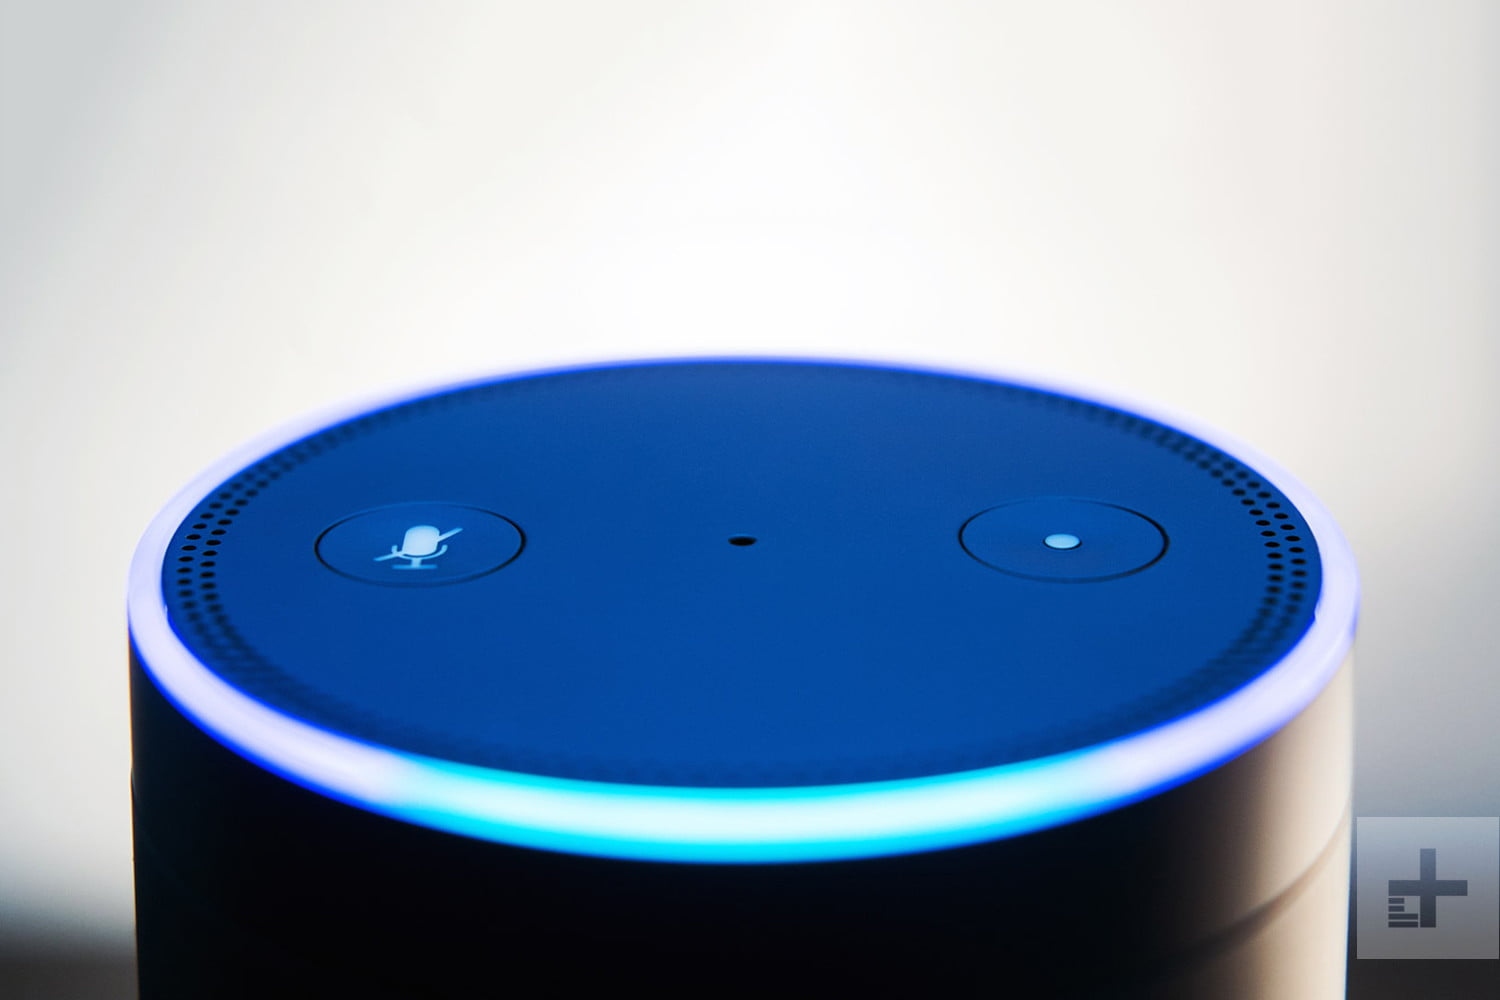 amazon-echo-alexa-closeup-top-2-1500x1000